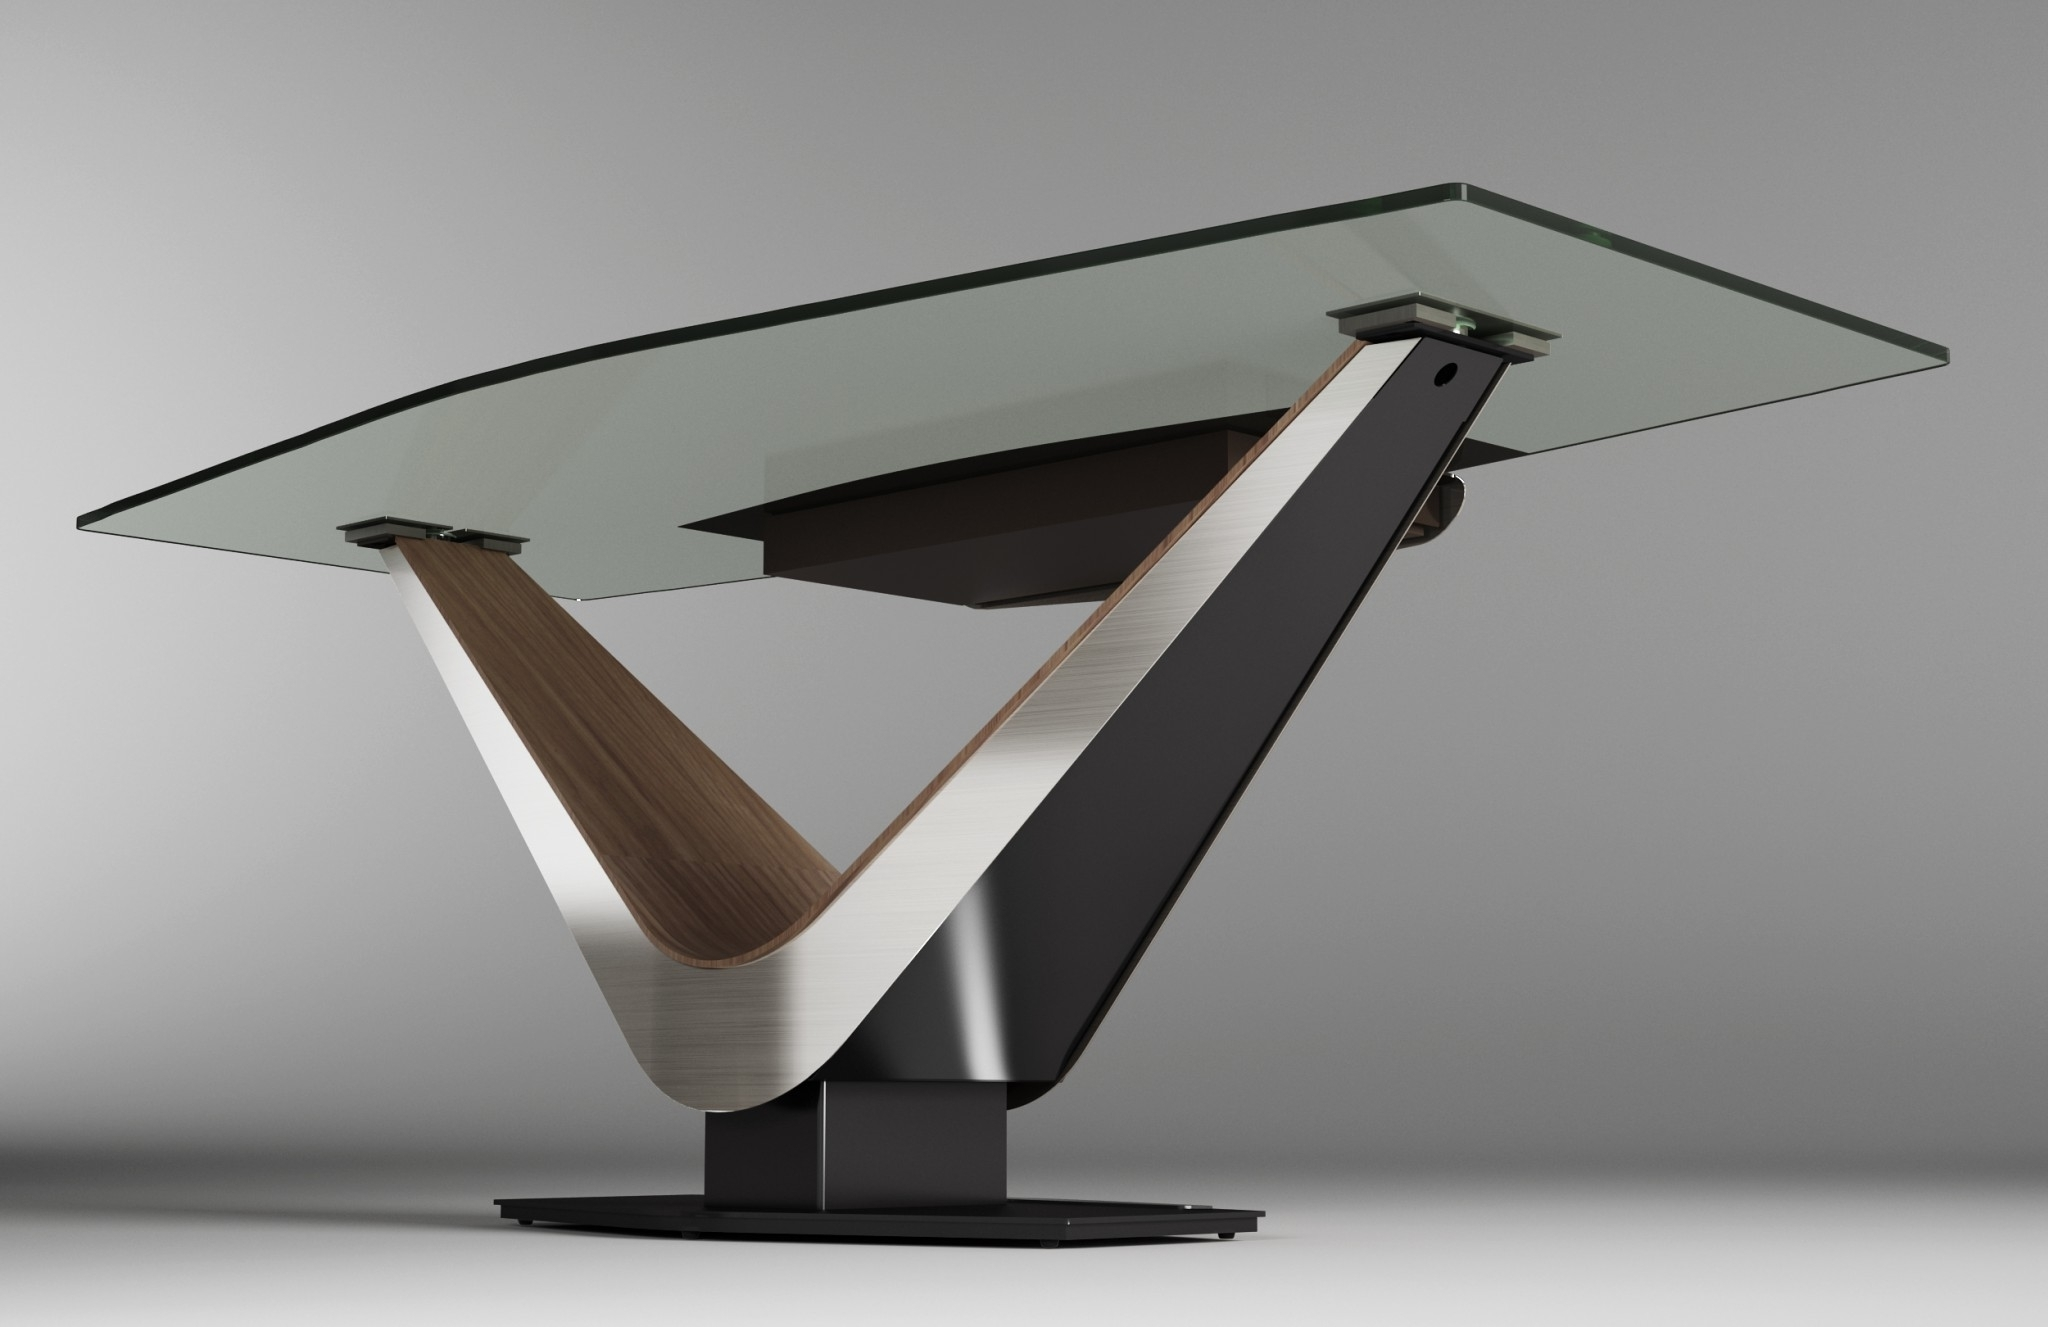 Victor Dining Table - Dining Tables Ideas within Current Victor Dining Tables